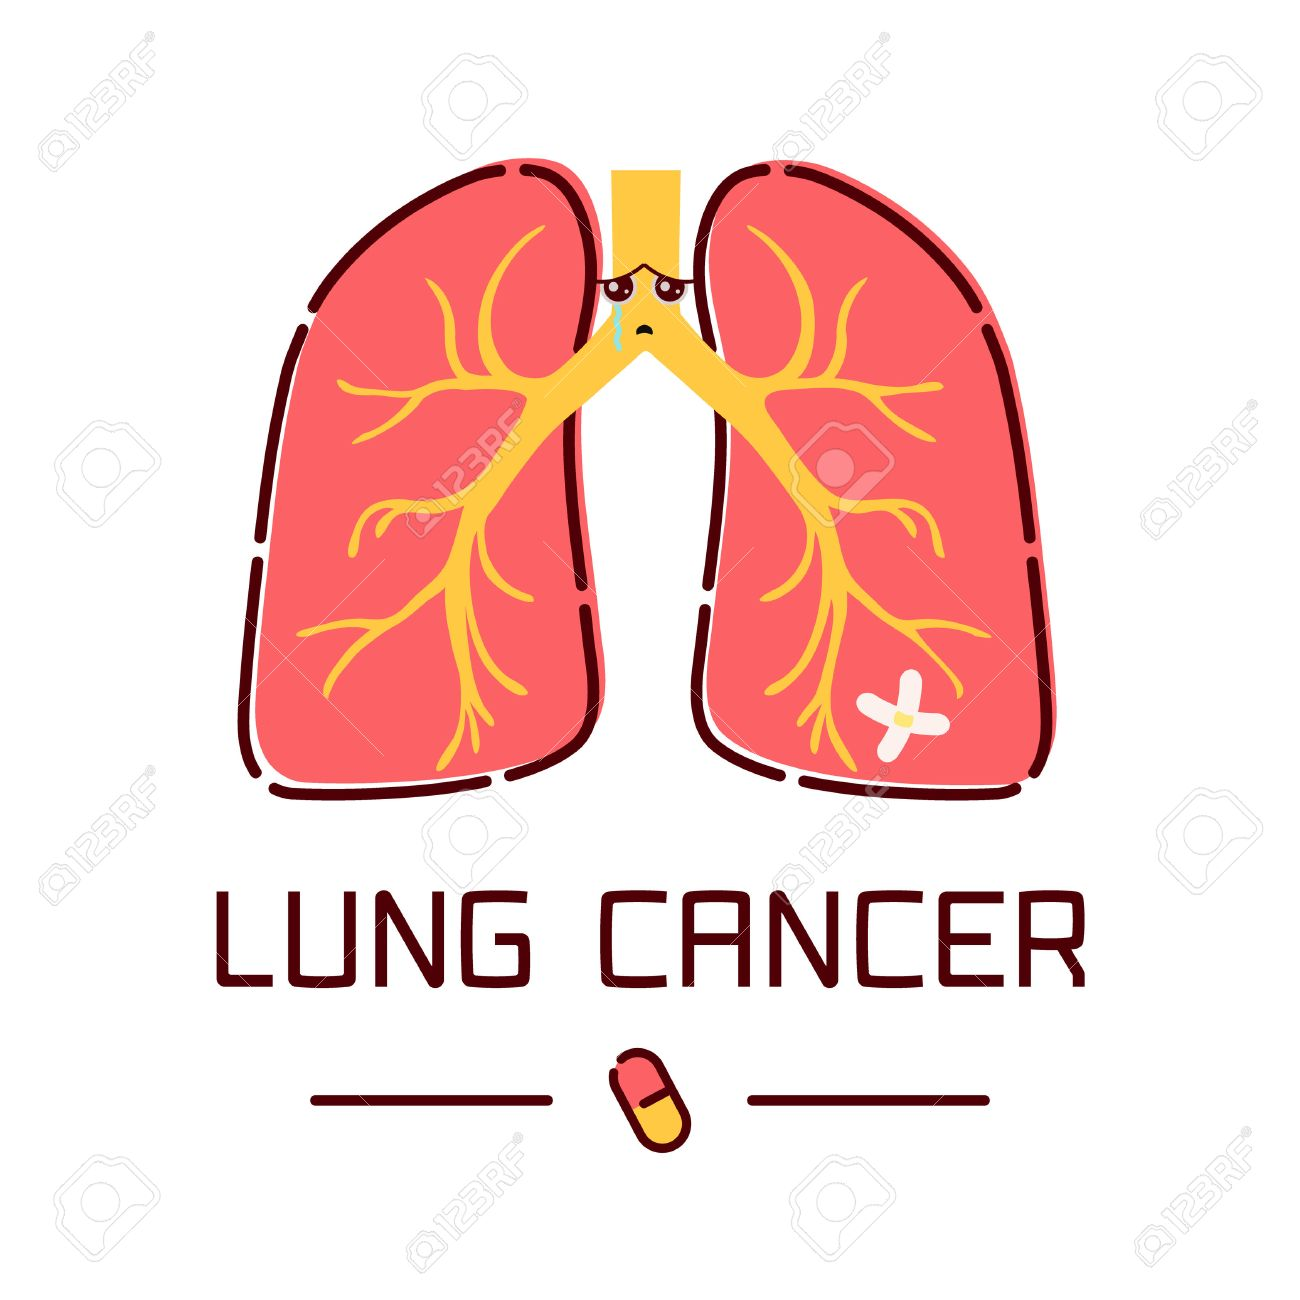 Lung Cancer Awareness Poster With Sad Cartoon Lungs Character ...